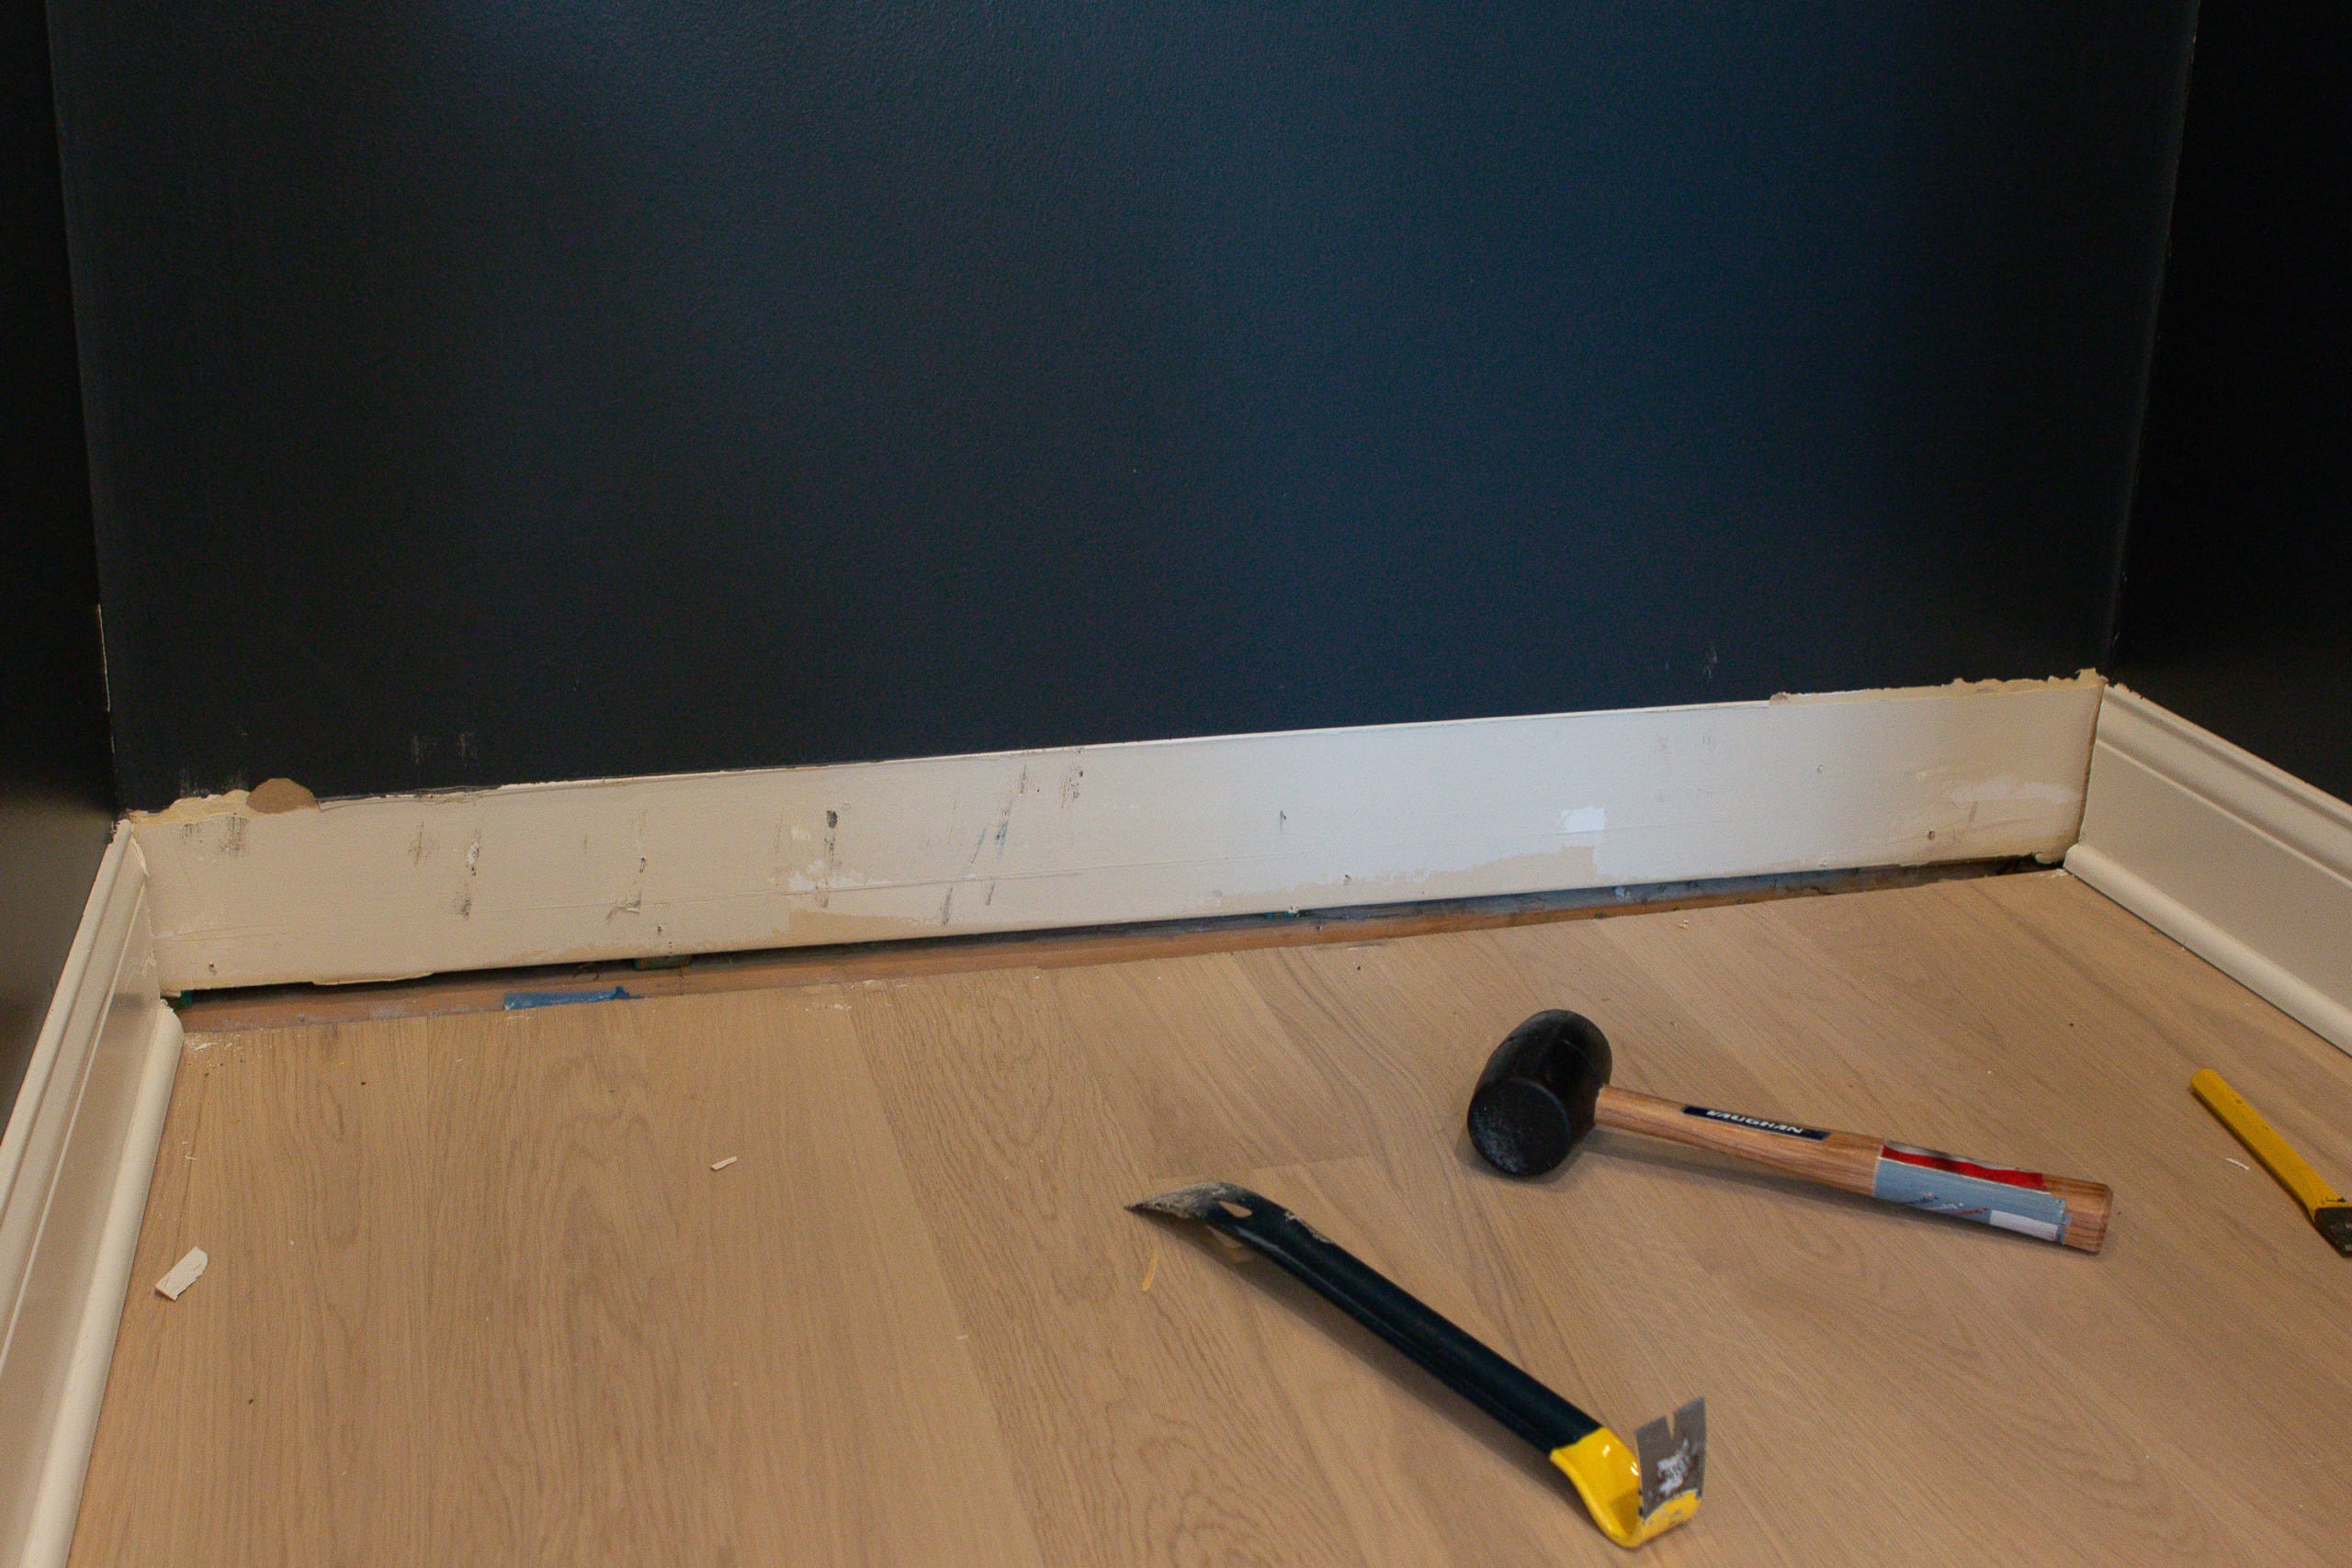 Remove the baseboard when you're installing the IKEA pax